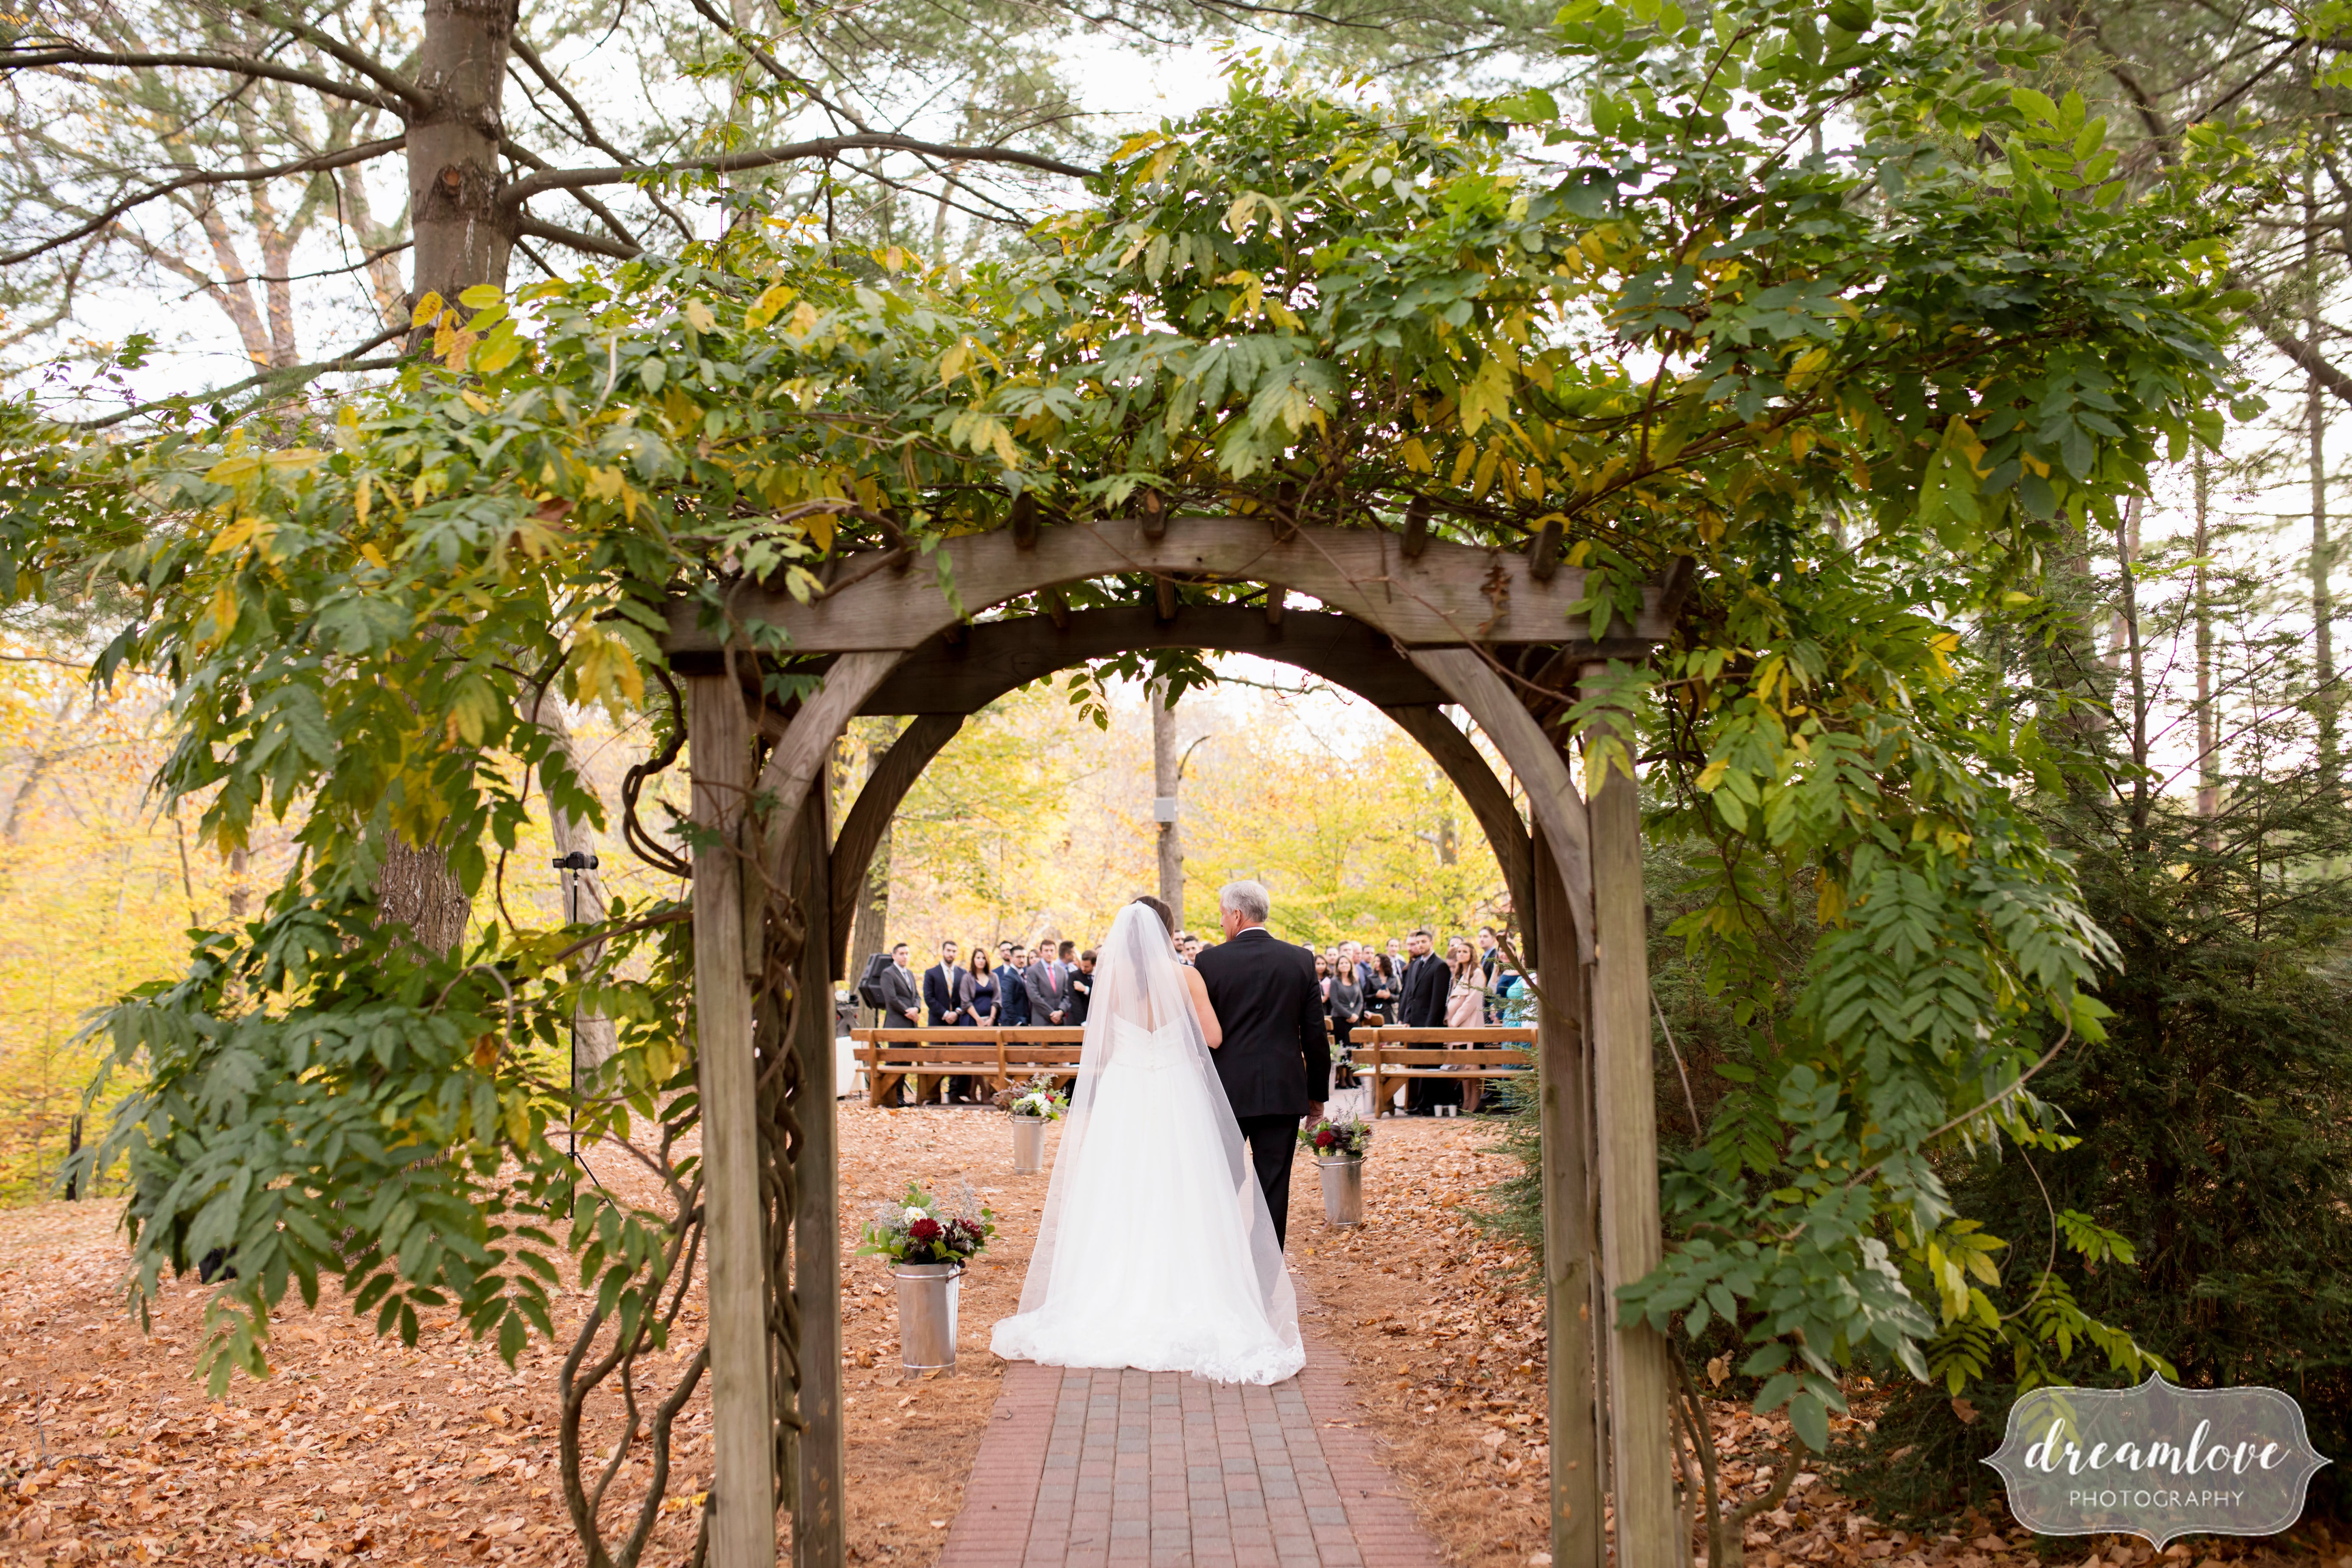 Bride and her father walk through an ivy covered arbor at the Crystal Lake Pavilion ceremony.